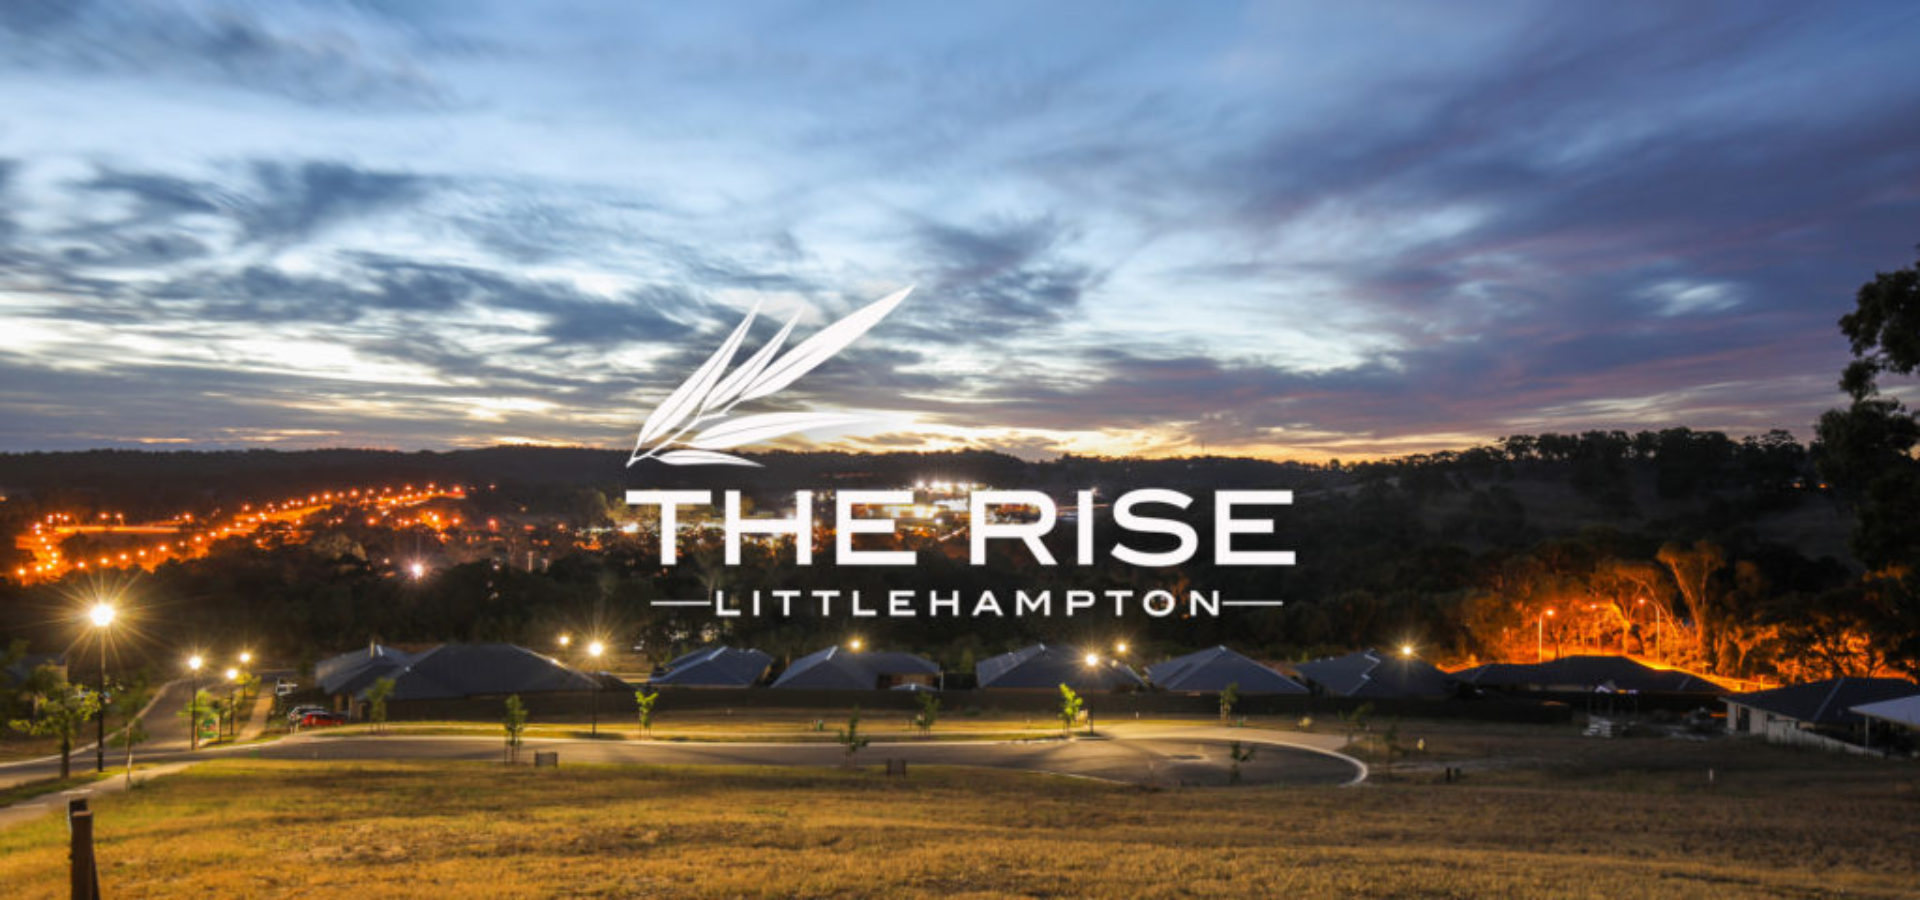 the rise littlehampton night view slider with logo 1